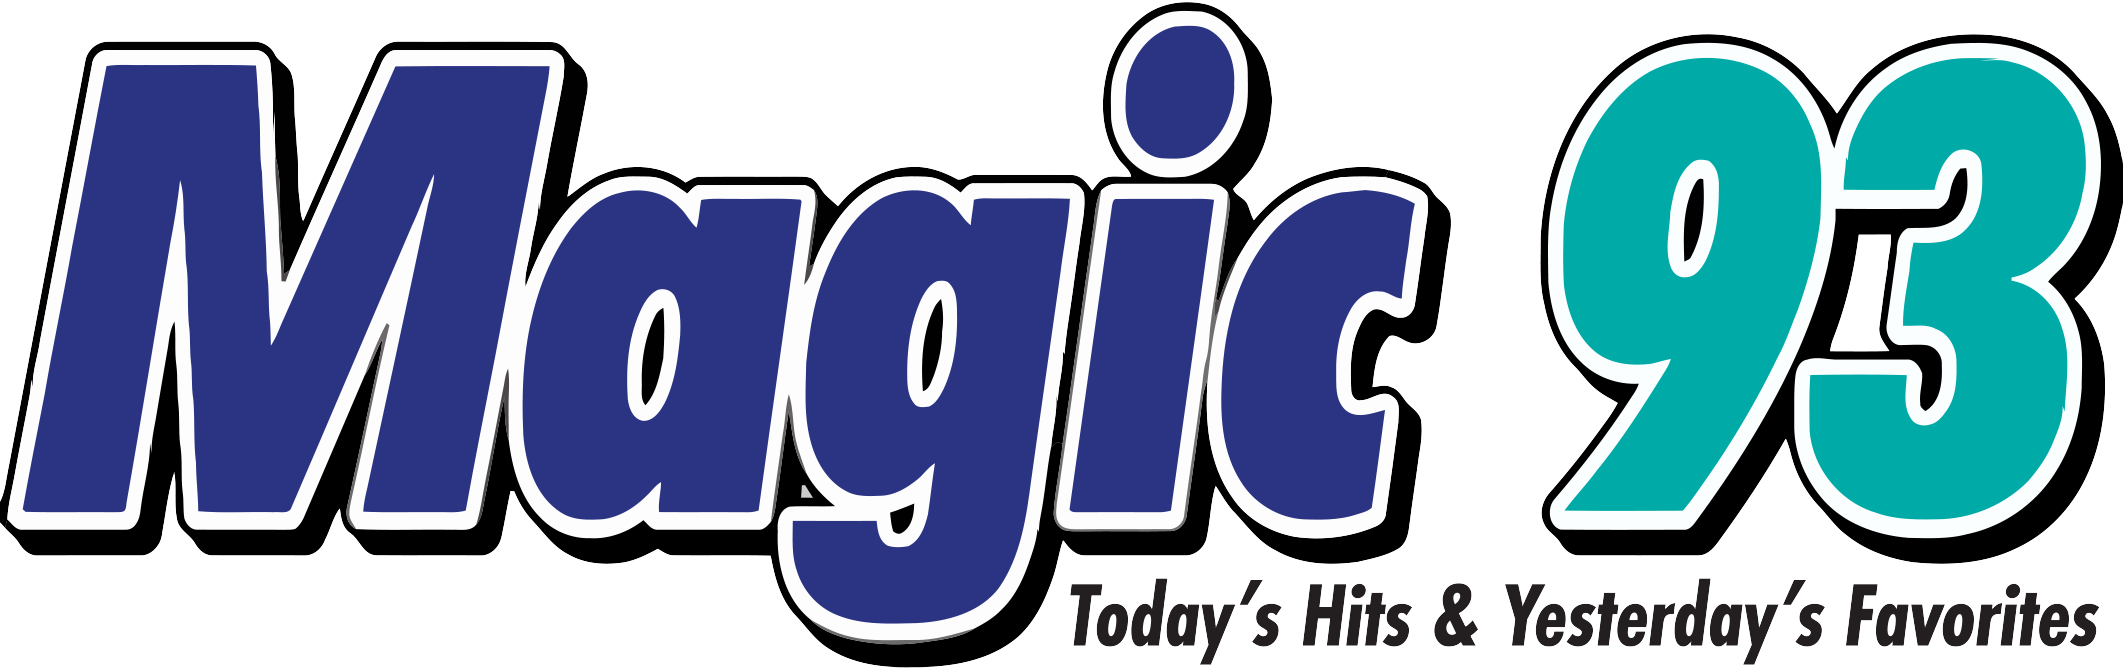 Magic 93 - Today's Hits and Yesterday's Favorites